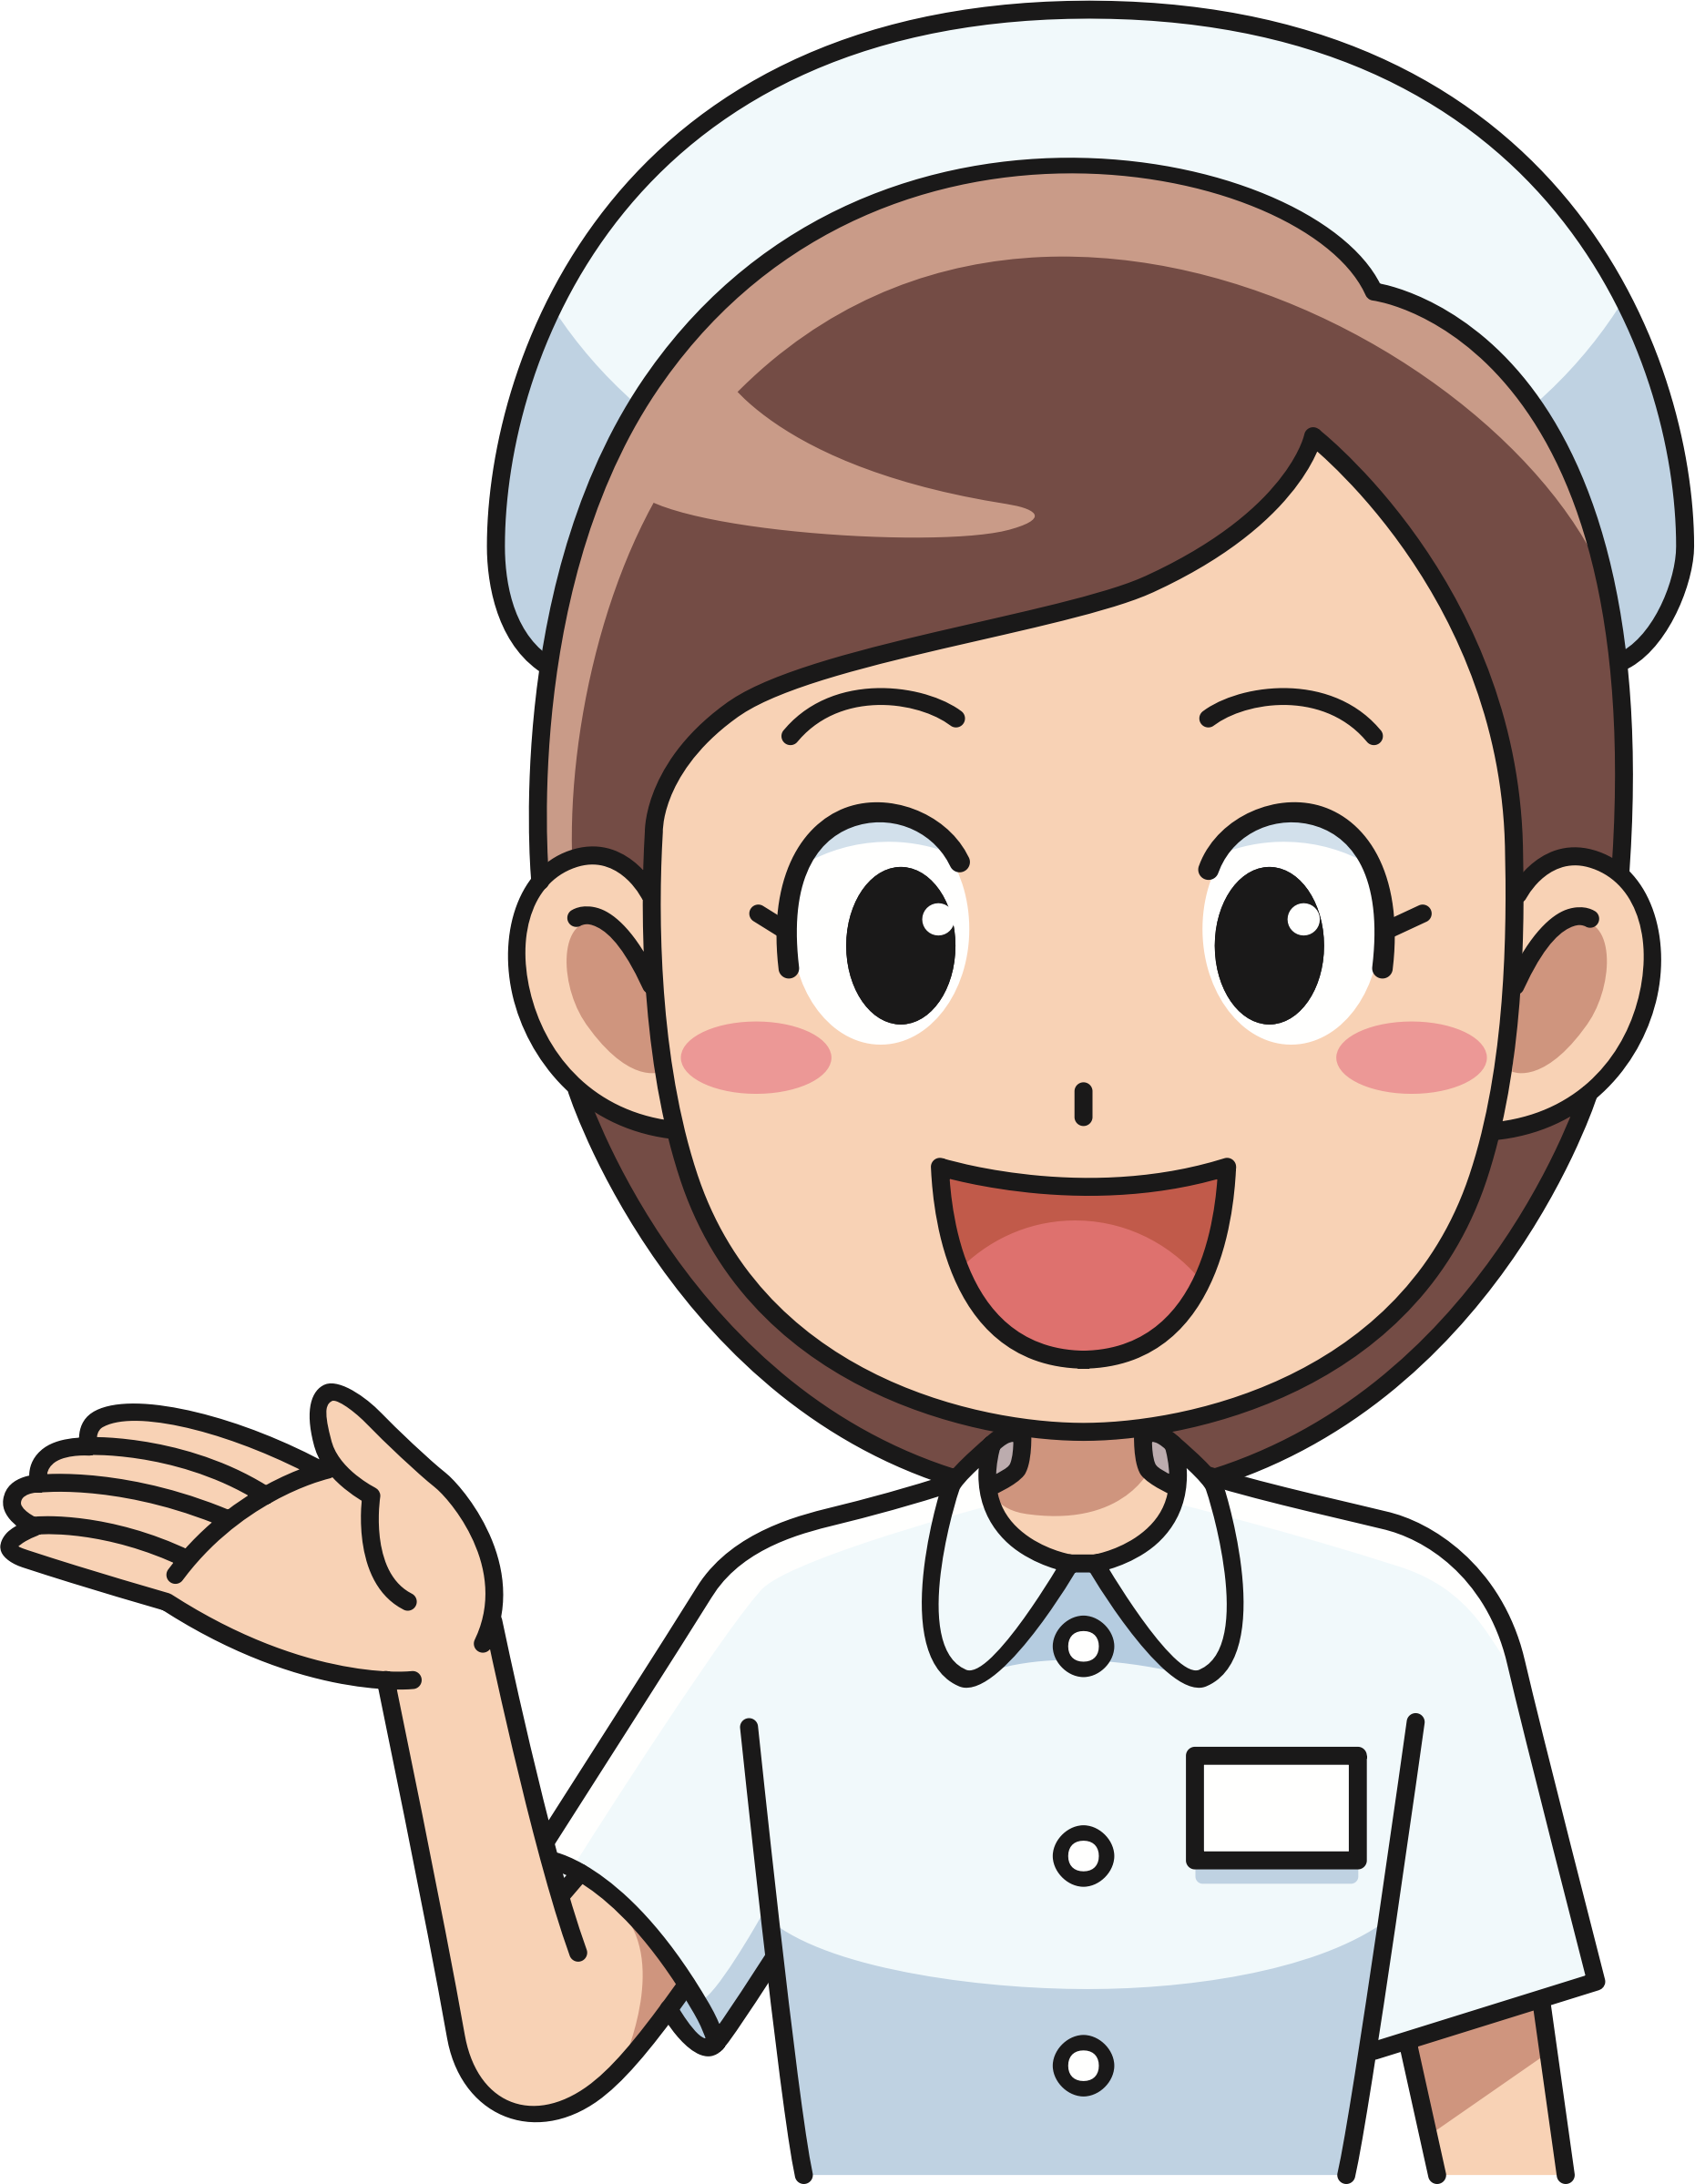 Nurse clipart png. At getdrawings free for